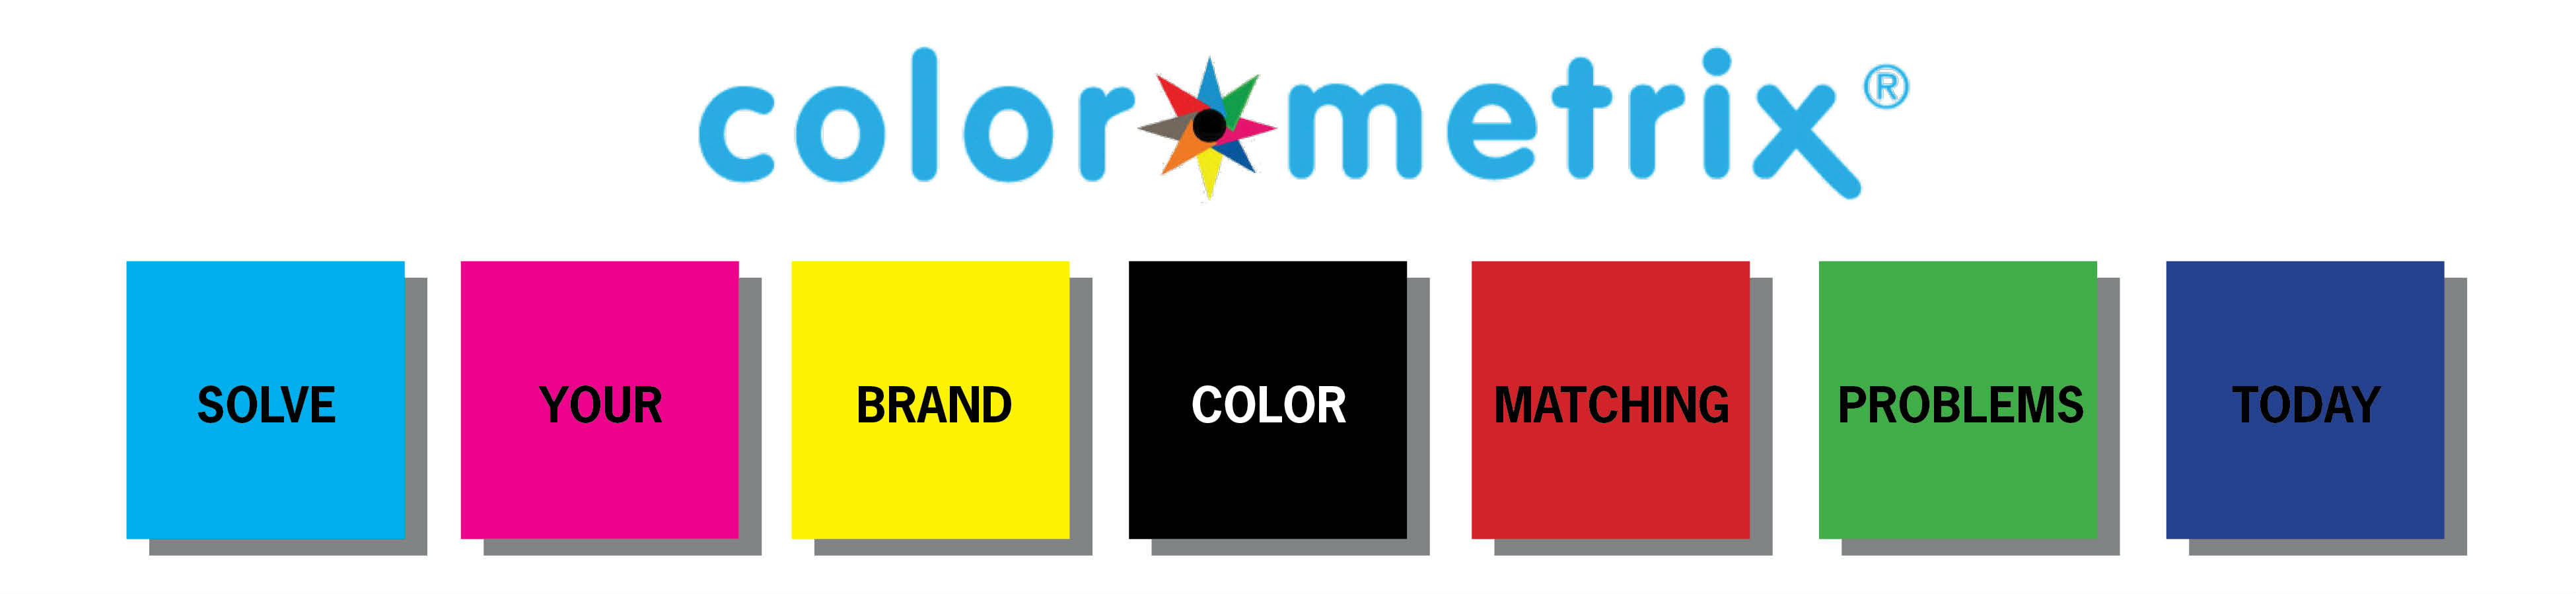 ColorMetrix